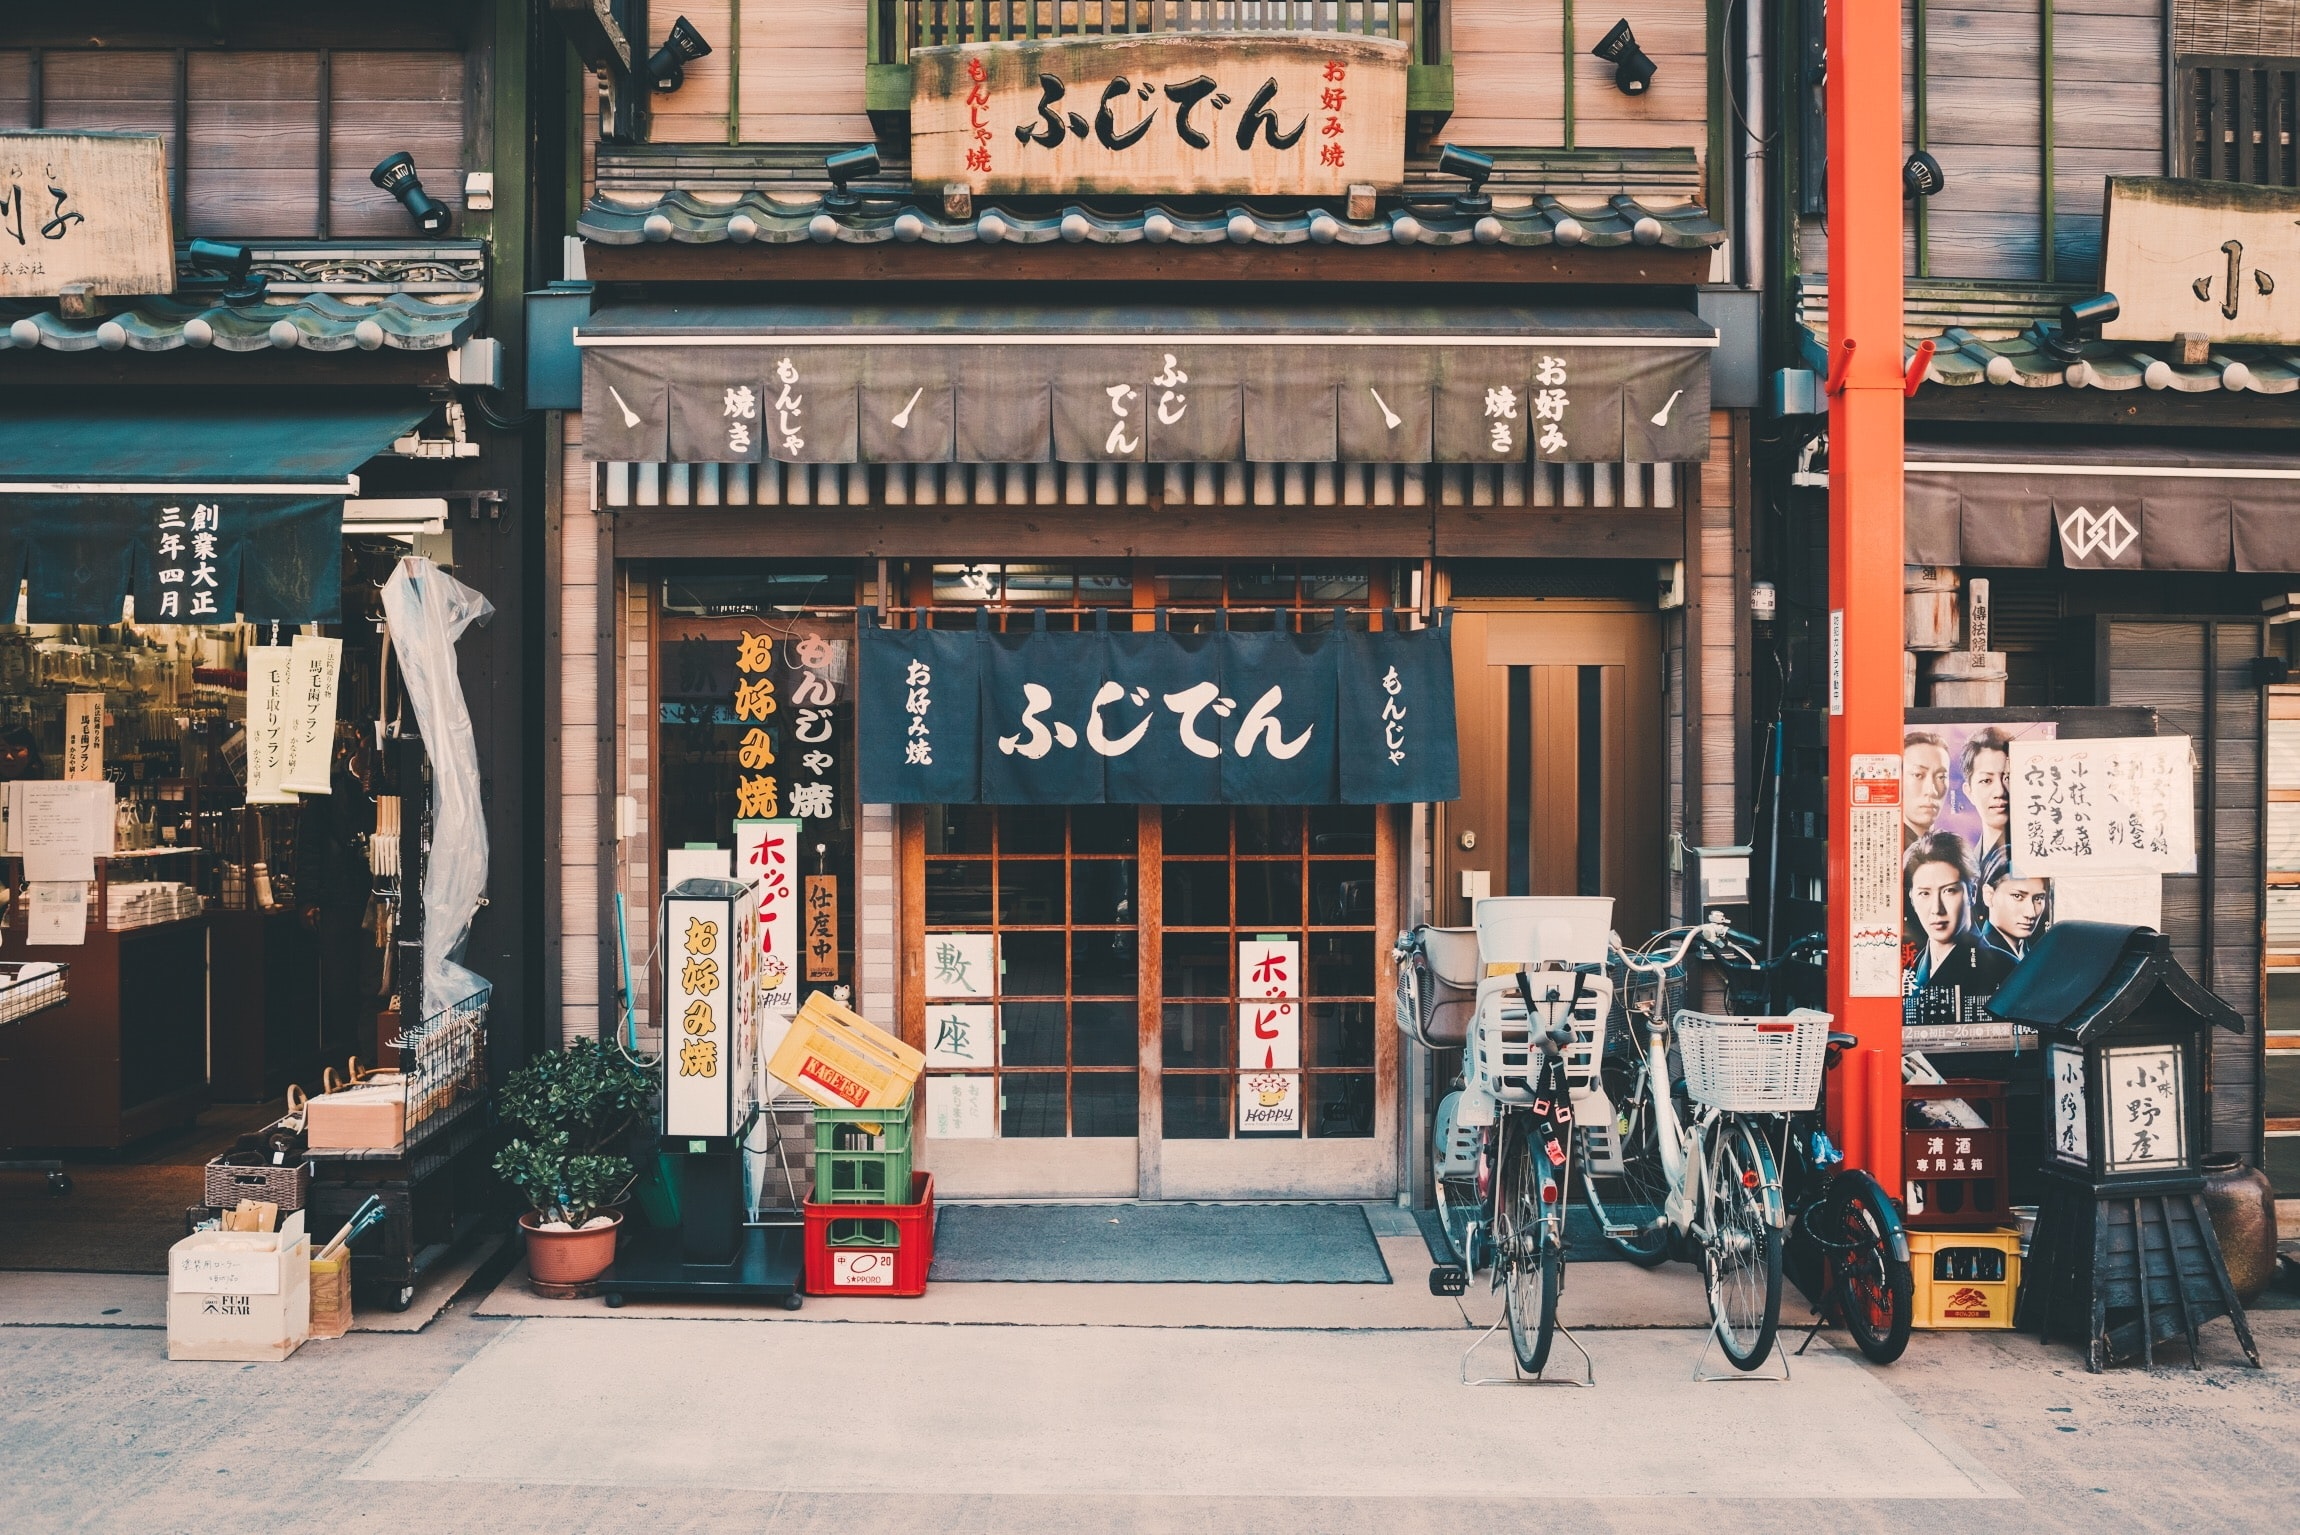 Bicycles parked at the entrance of a local restaurant in Tokyo